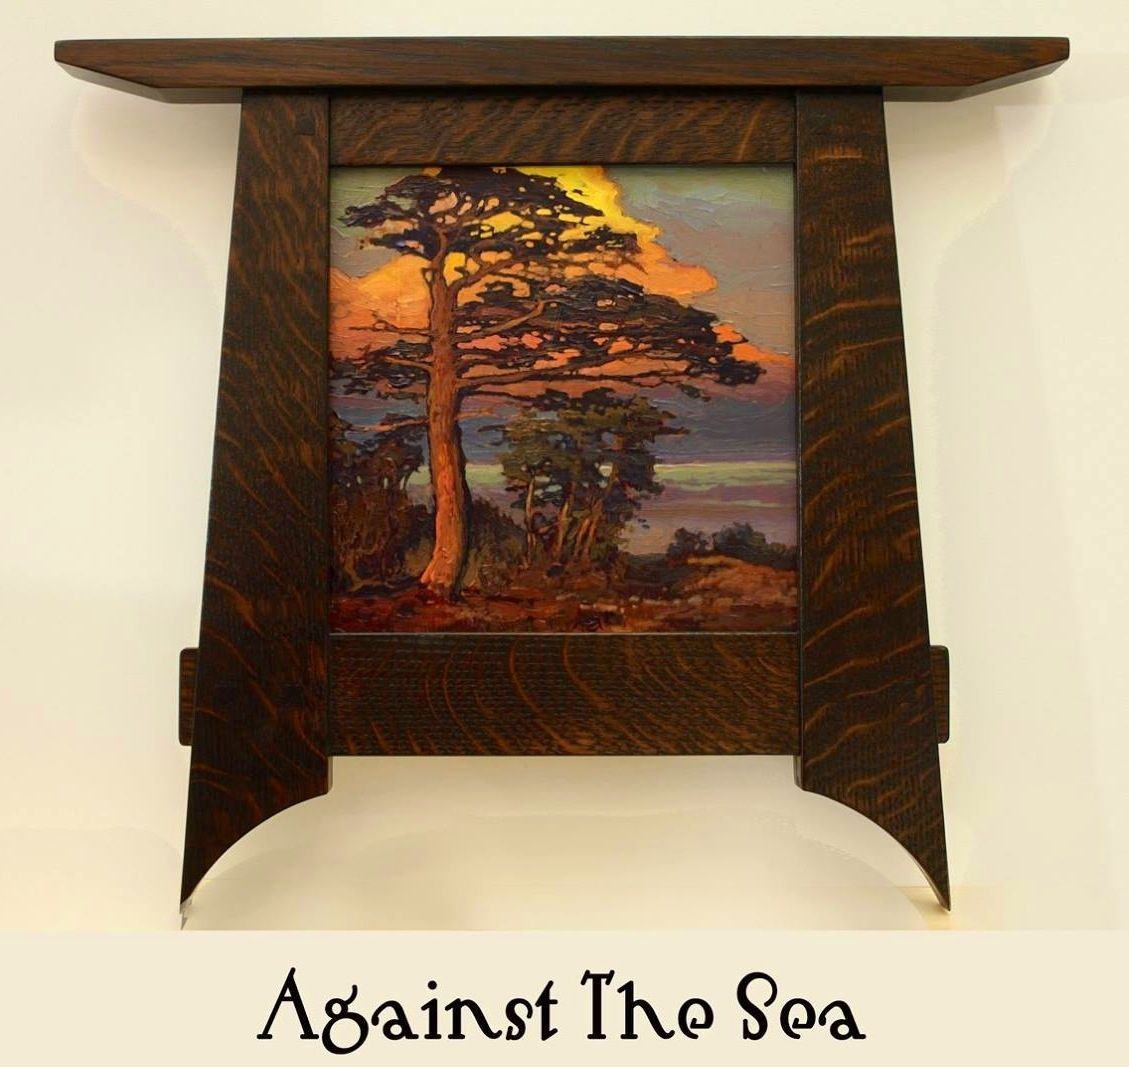 Jan Schmuckal Against The Sea Arts And Crafts Craftsman Bungalow Frame Arts Crafts Style Art And Craft Design Arts And Crafts Furniture